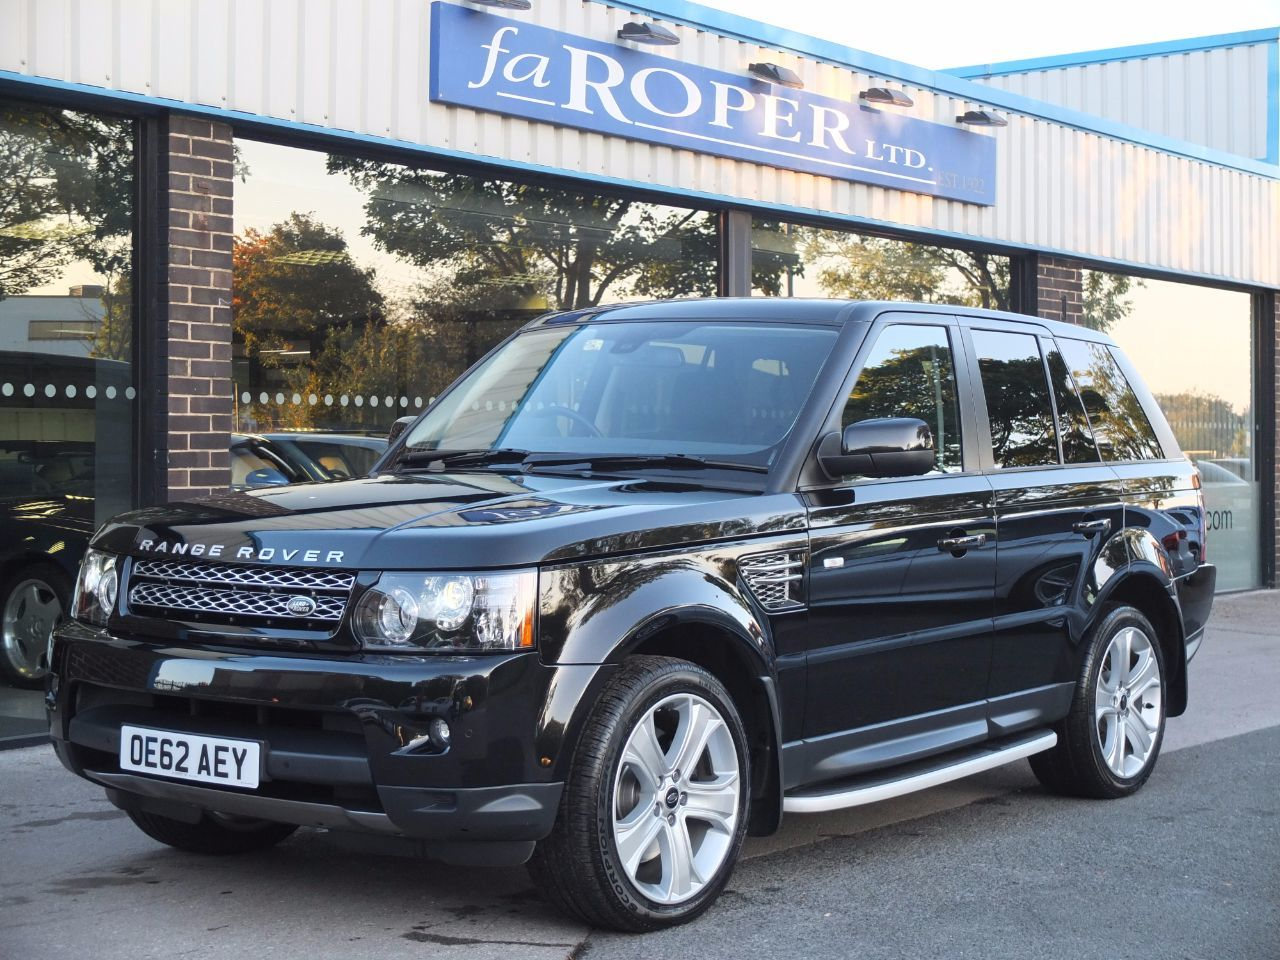 Land Rover Range Rover Sport 3.0 SDV6 HSE Auto Luxury Pack ++ Estate Diesel Santorini Black MetallicLand Rover Range Rover Sport 3.0 SDV6 HSE Auto Luxury Pack ++ Estate Diesel Santorini Black Metallic at fa Roper Ltd Bradford